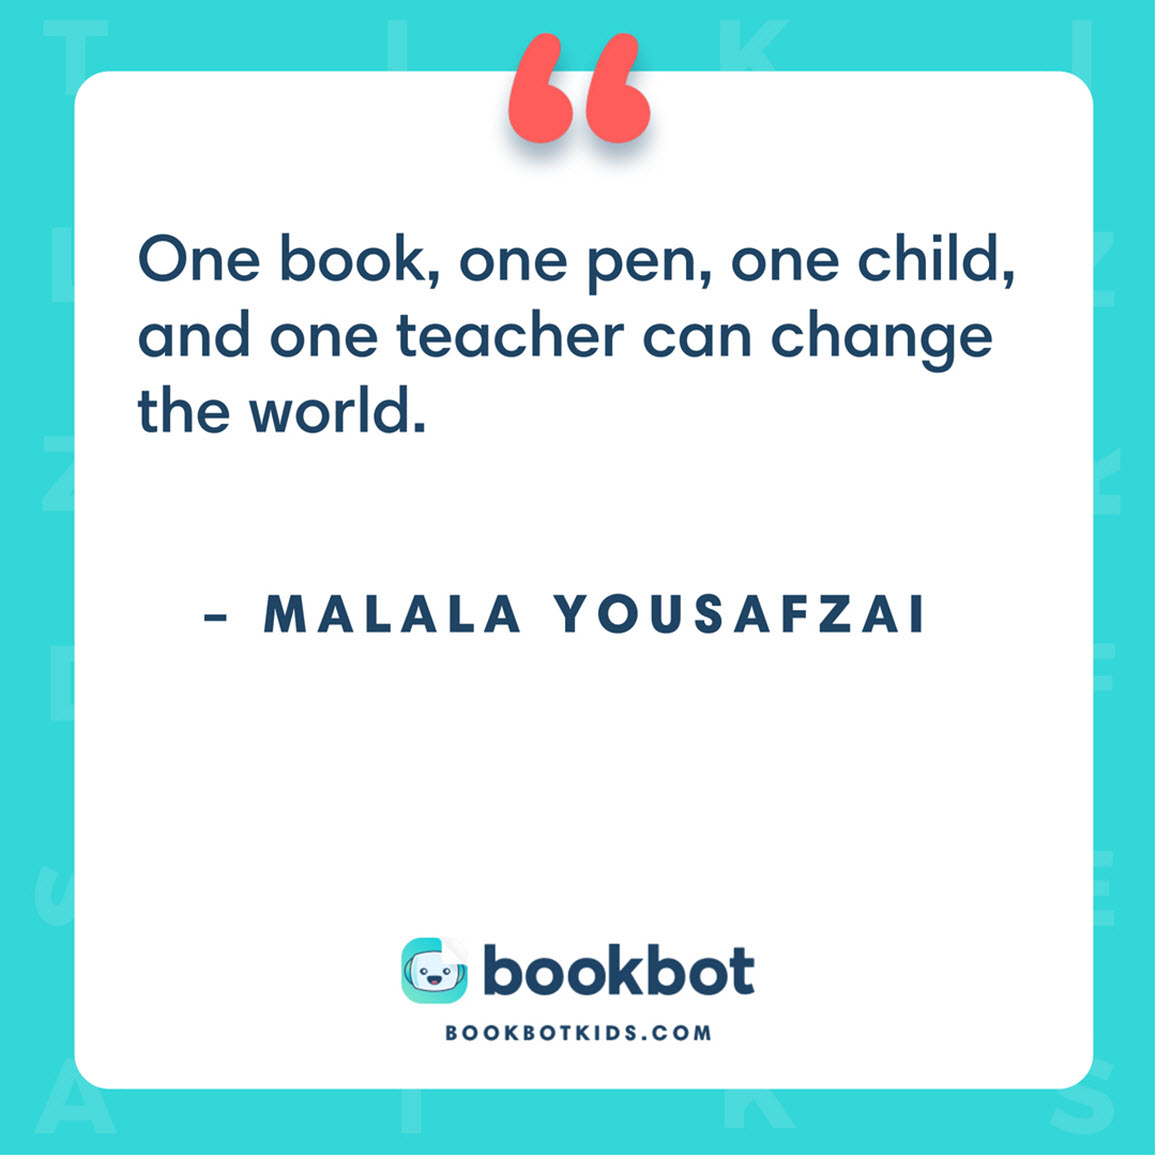 One book, one pen, one child, and one teacher can change the world. – Malala Yousafzai